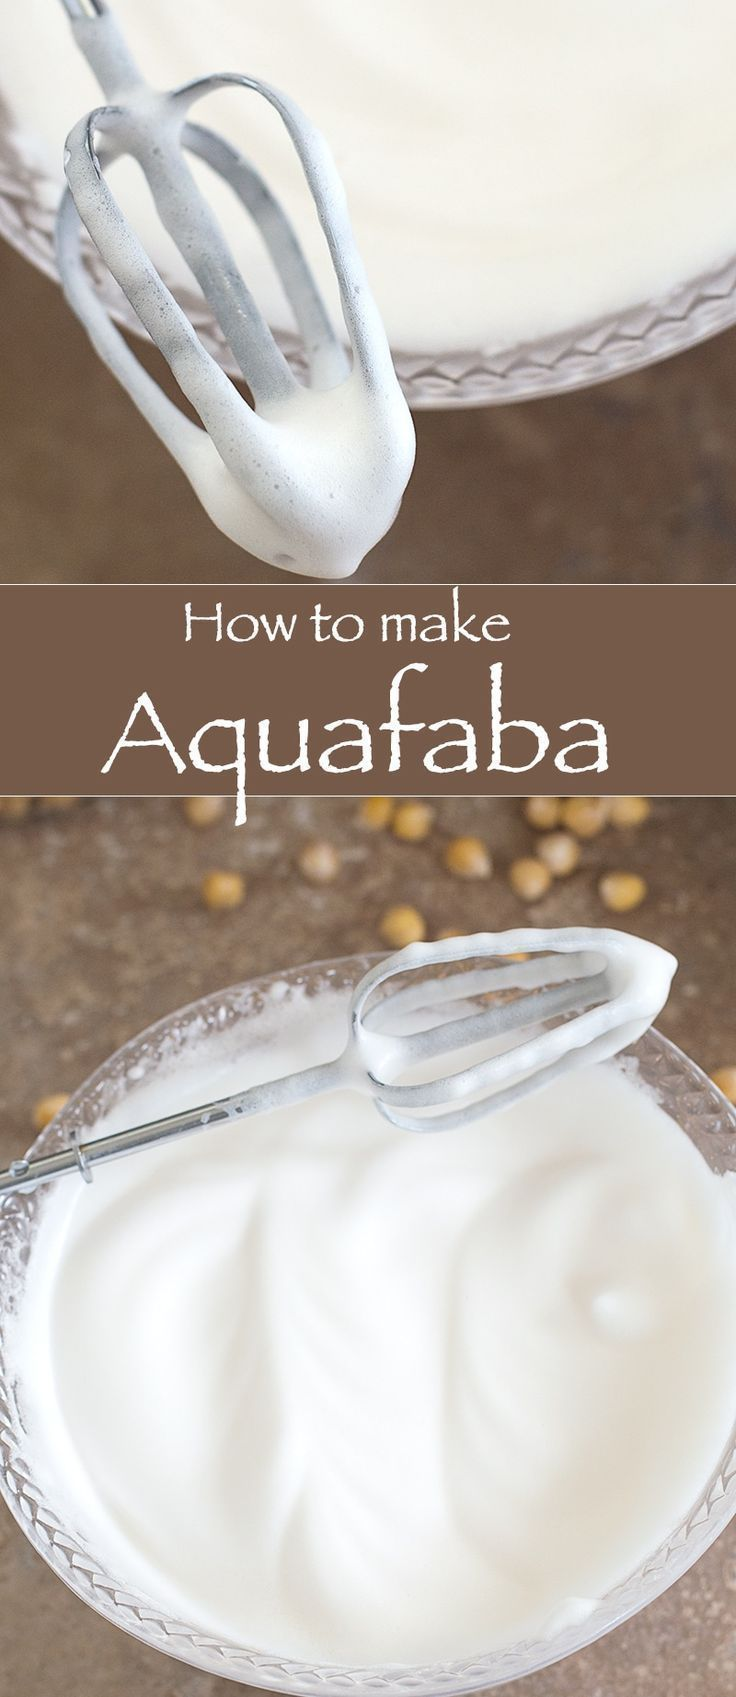 To Make Aquafaba How to Make Aquafaba? This is the Simplest Vegan Product You Can Make. It Is The Greatest Food Discovery Since the Waffle Cone! Vegans swear by it as it's the perfect base for an endless number of desserts and other foodie staples such as: Meringue, Mousse, Frosting, Mayonnaise, Whipped Cream, Macarons, Marshmallows. |